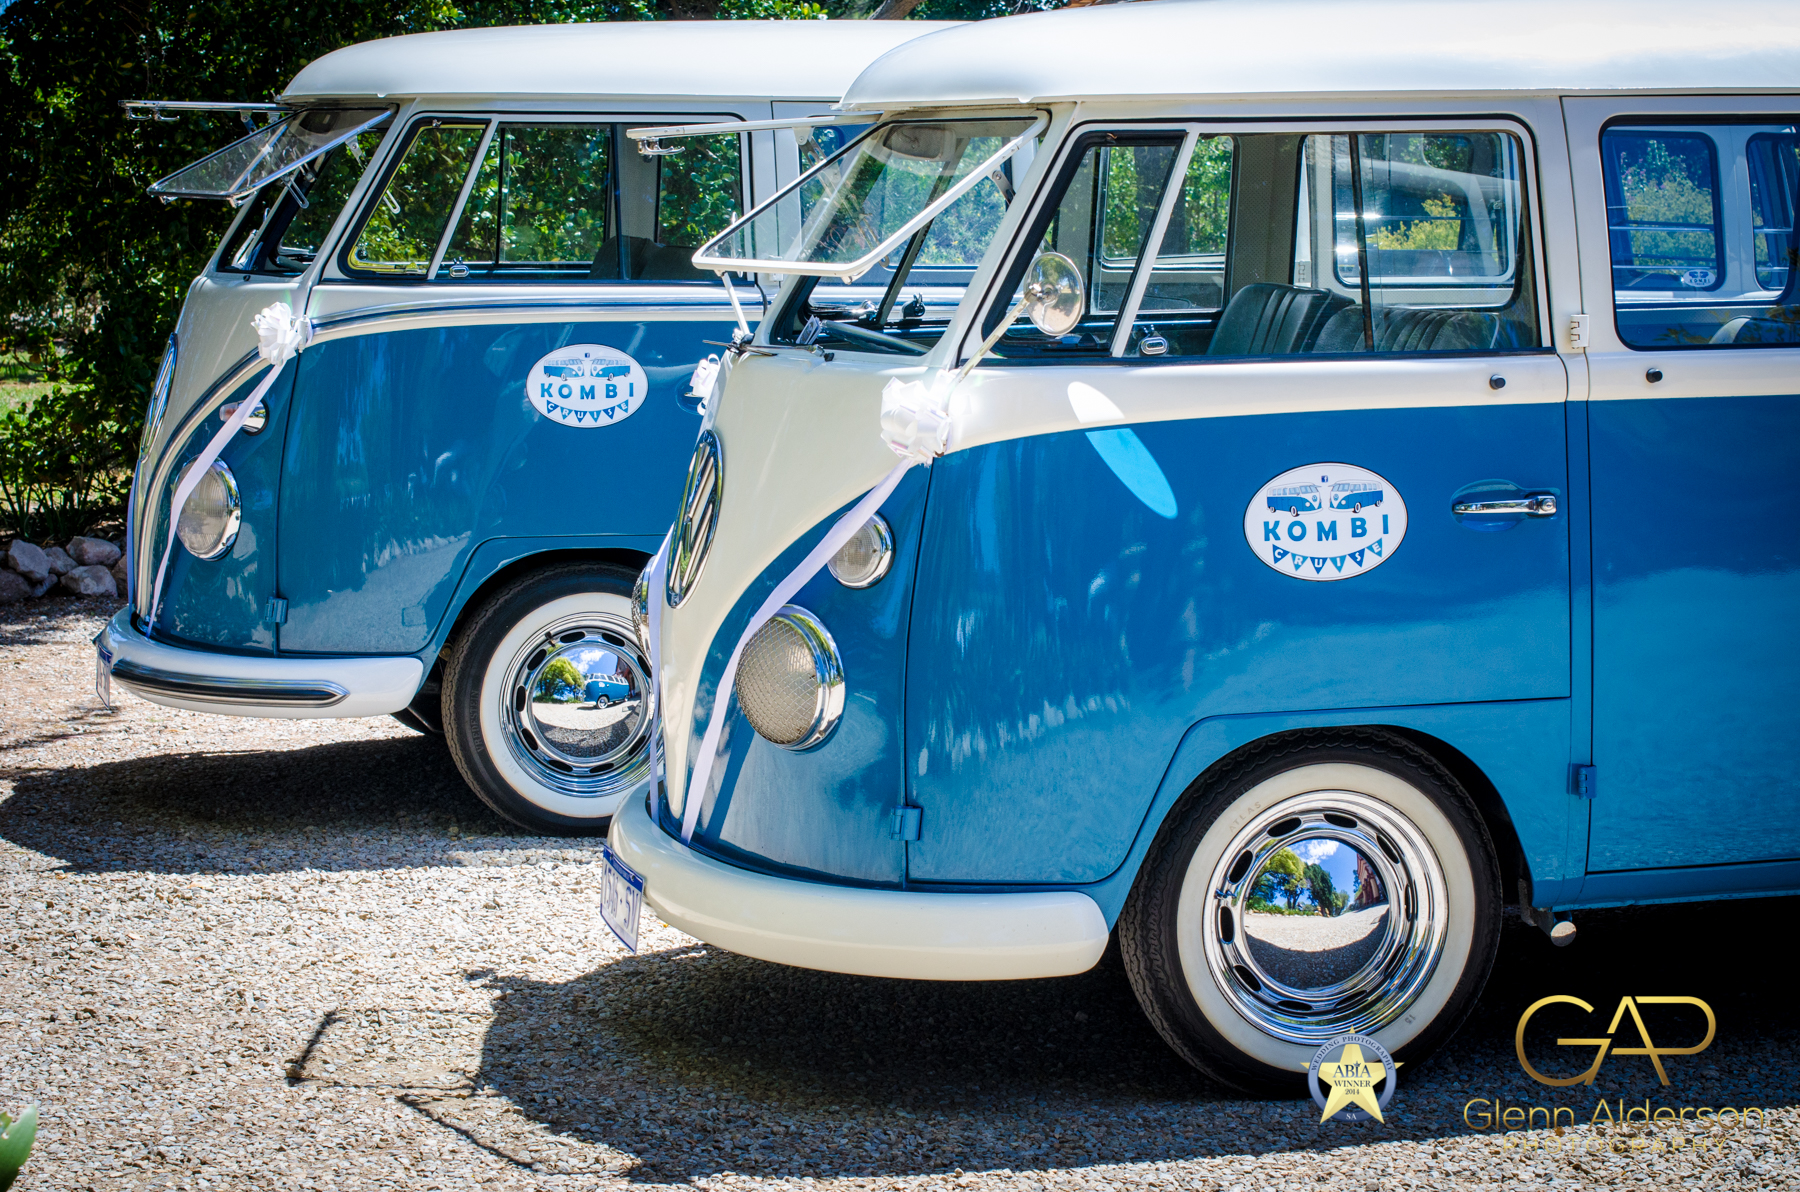 Kombi Cruse WM (8 of 8)